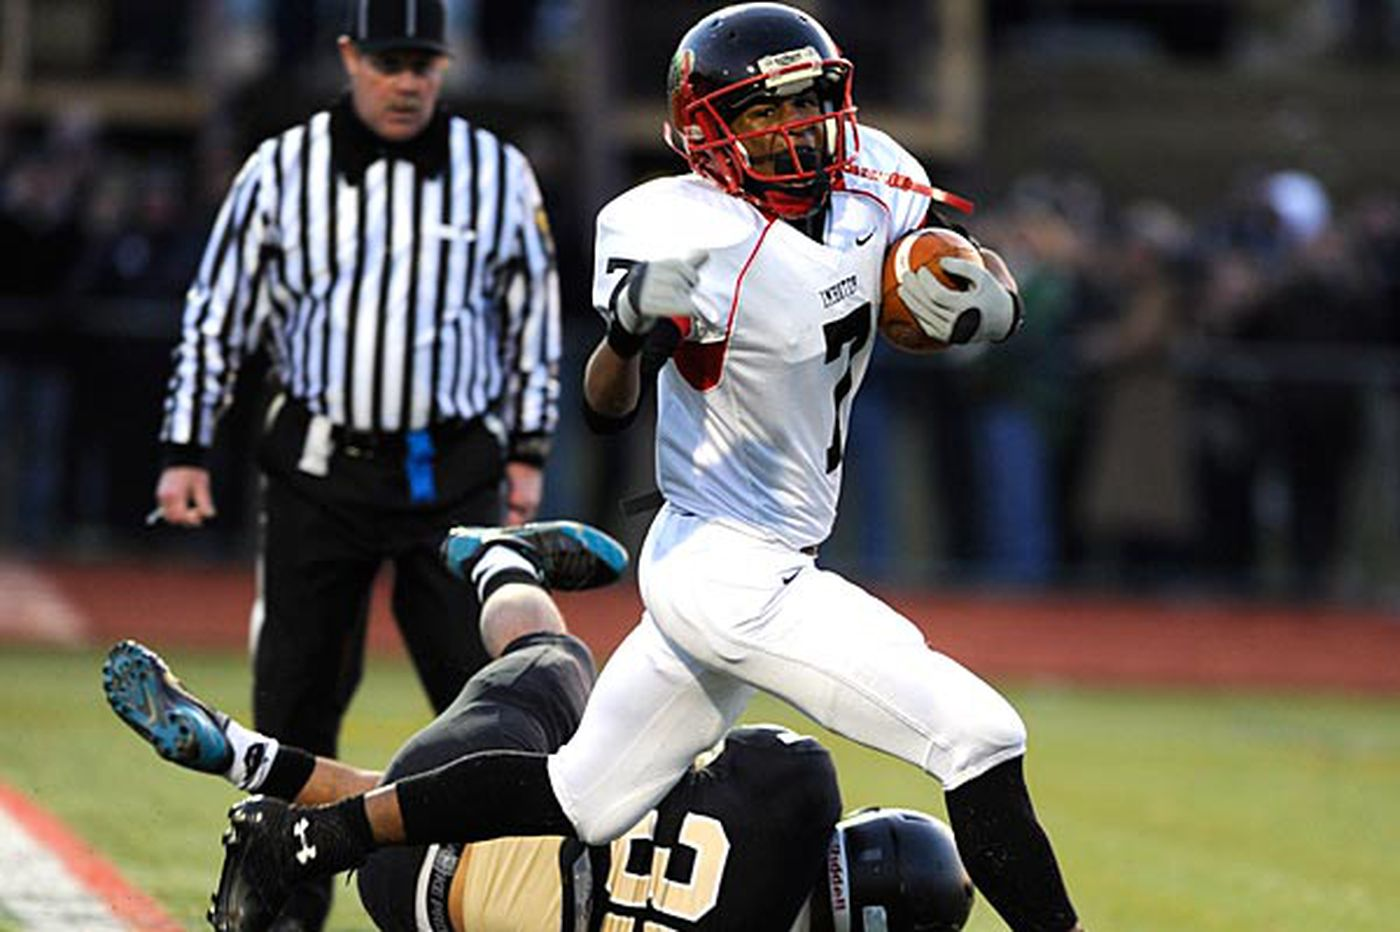 Imhotep wins semifinal with shutout